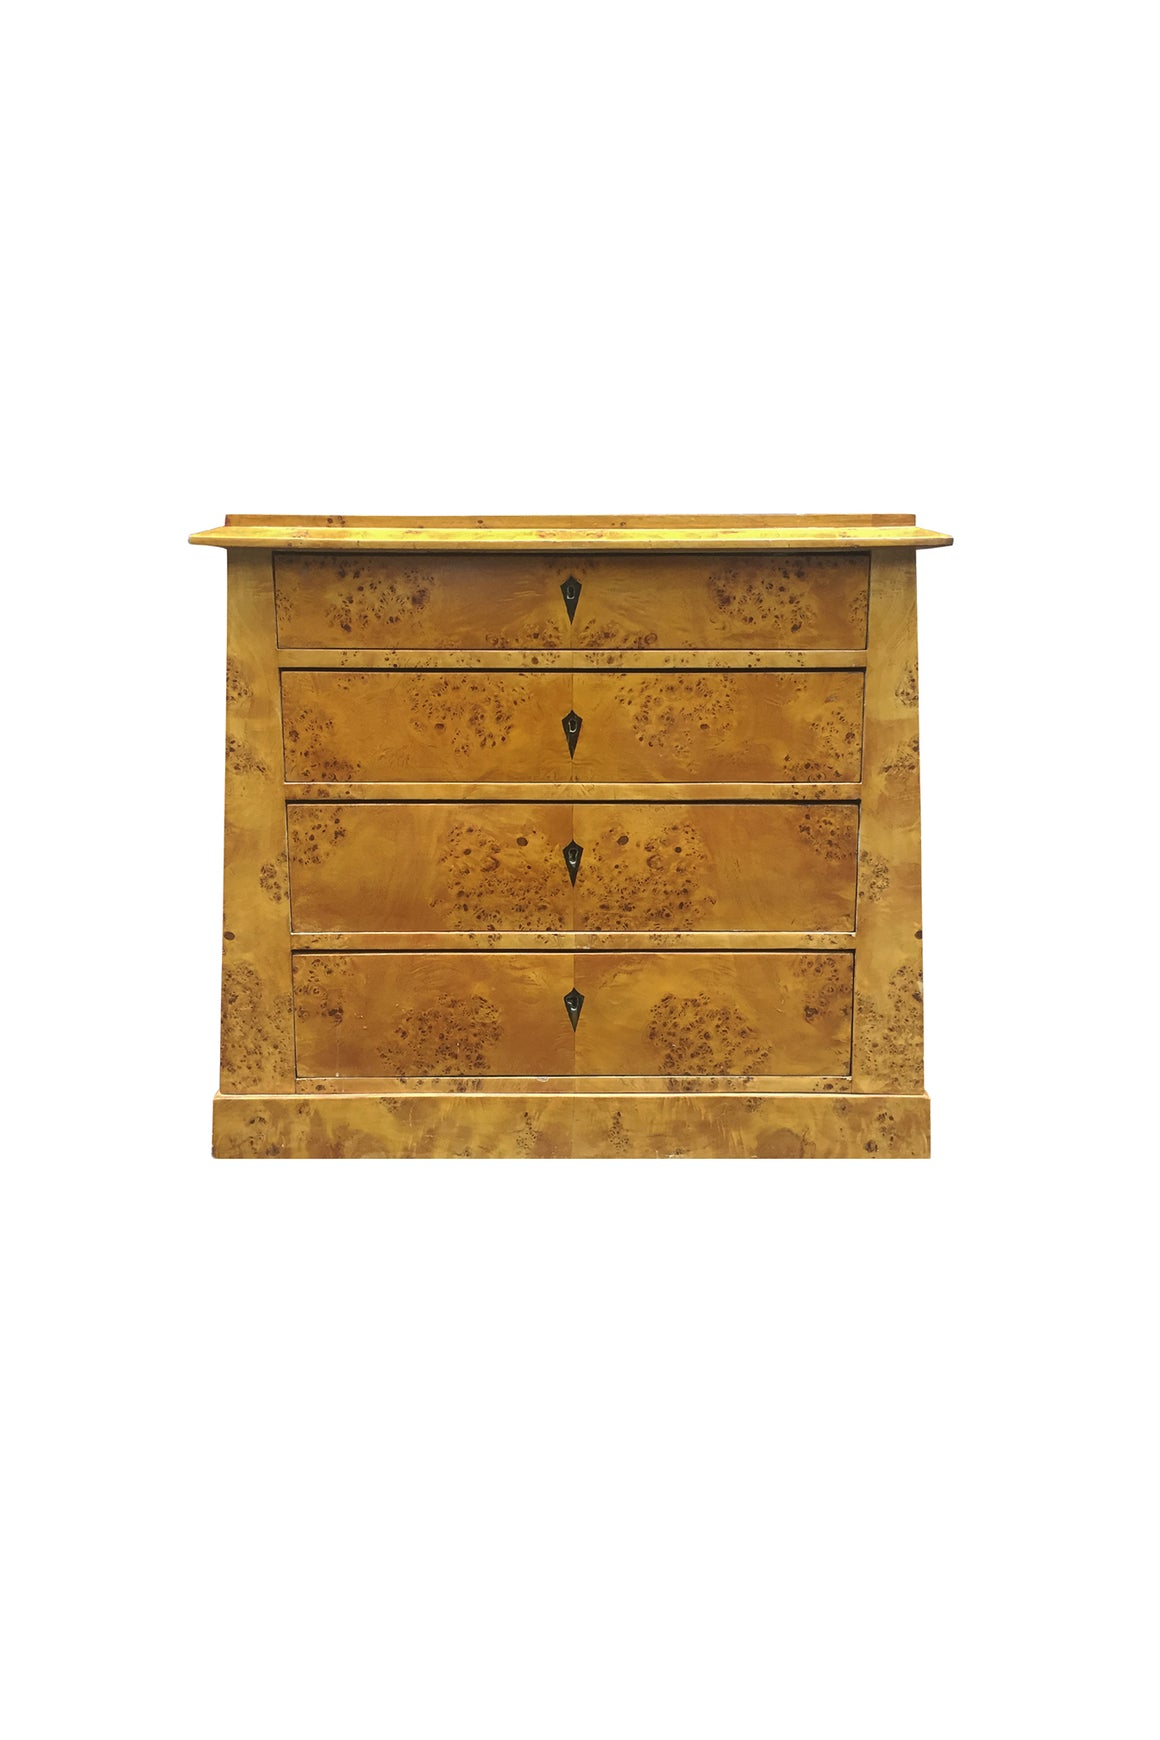 19th Century Biedermeier Burl Chest of Drawers - ON HOLD